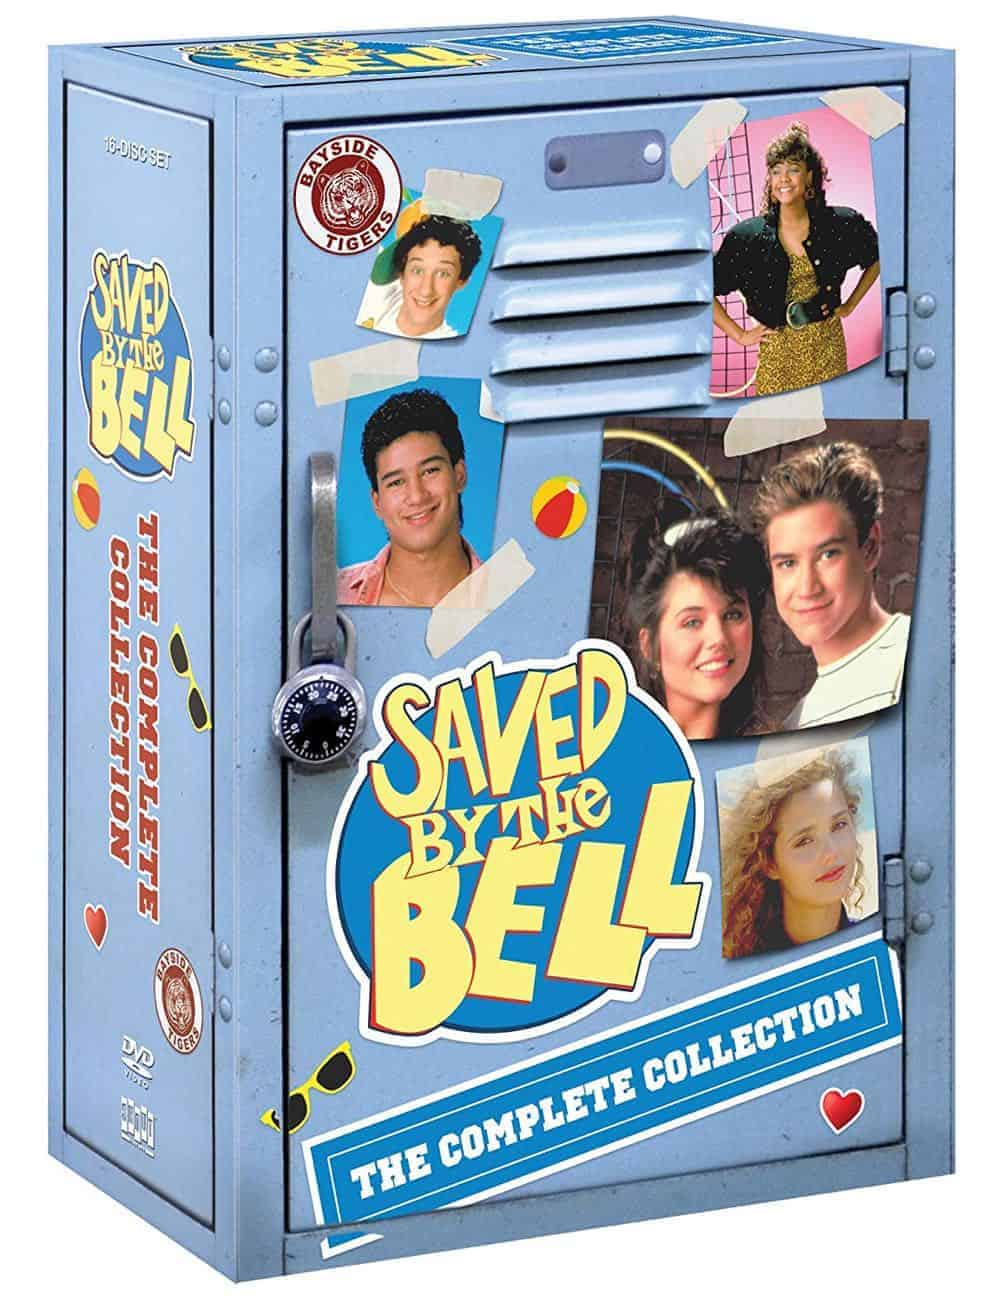 SAVED-BY-THE-BELL-THE-COMPLETE-COLLECTION-DVD